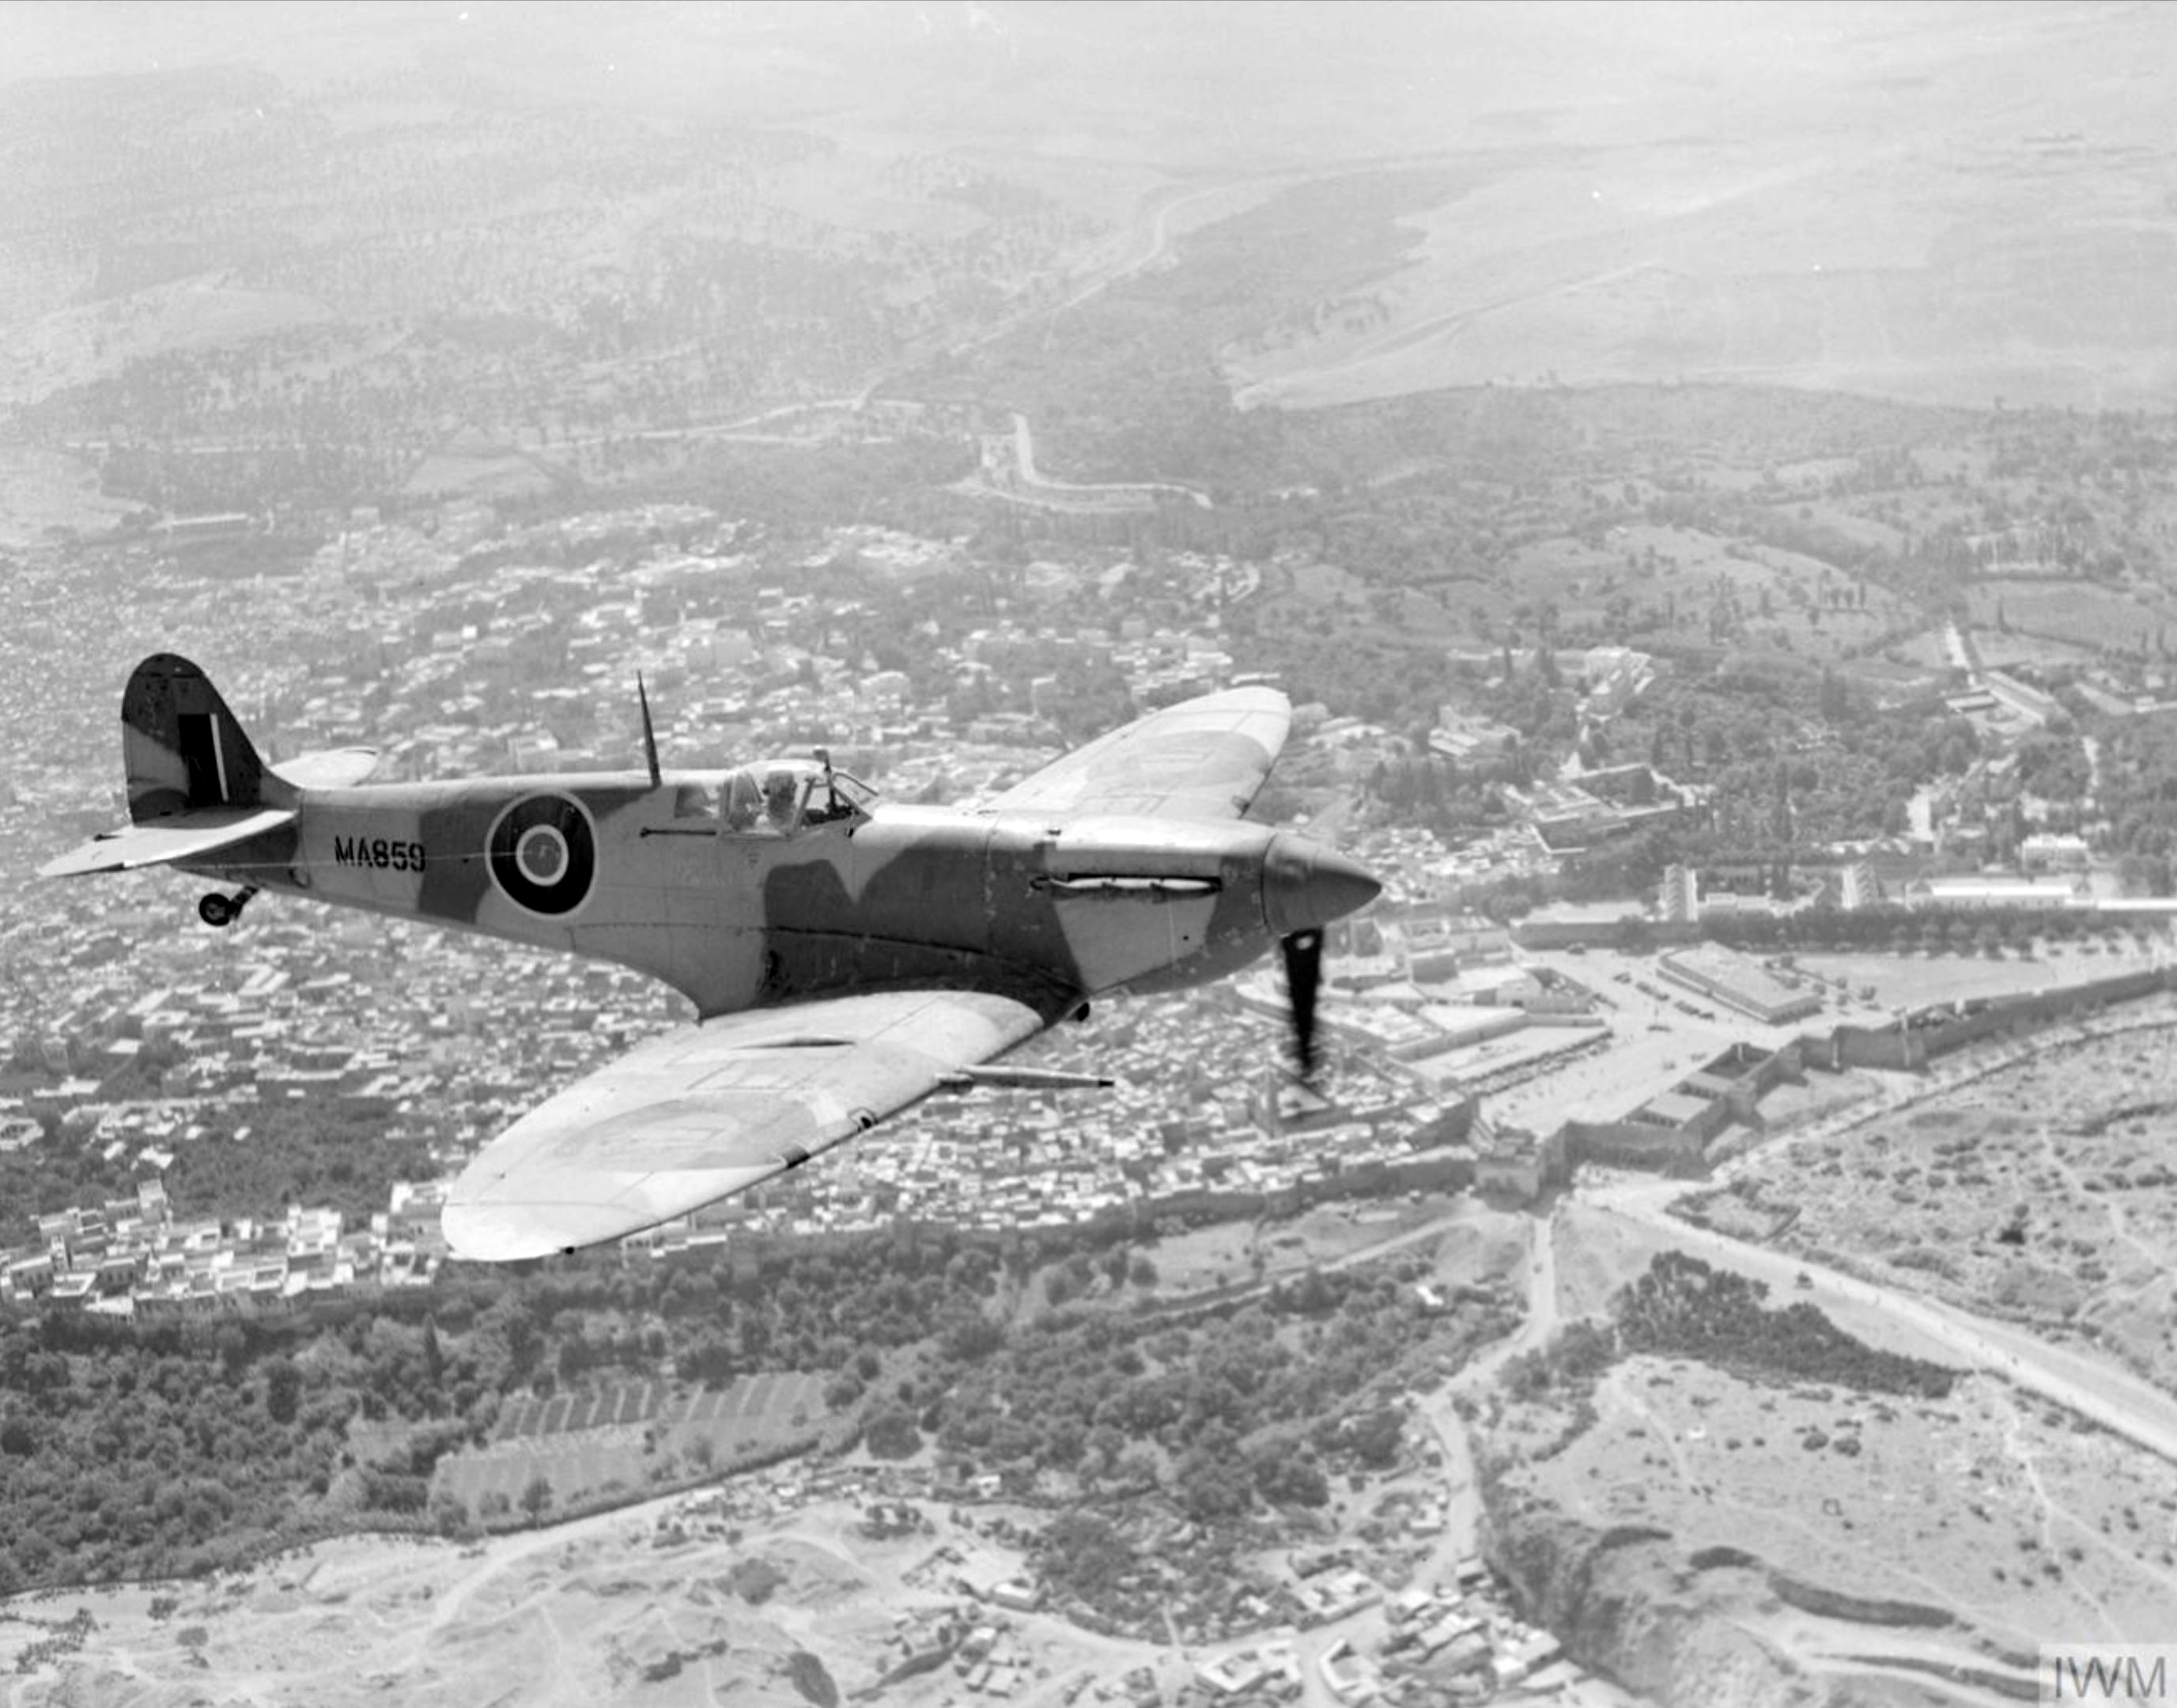 Spitfire MkVc RAF 243Sqn MA859 over Fez Morocco while on its delivery flight IWM CNA2220